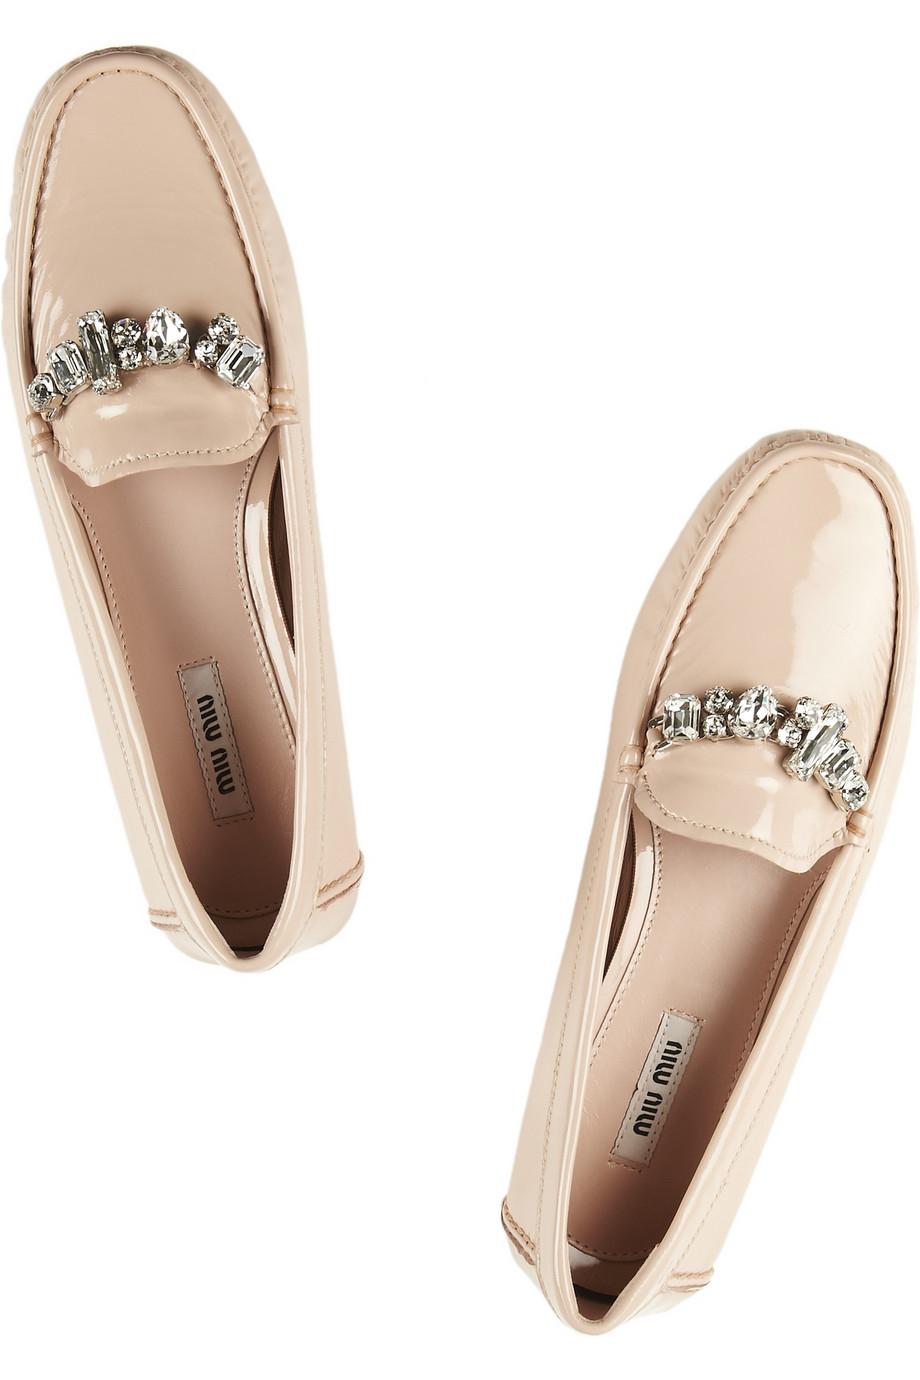 Miu Miu Shoes Heels